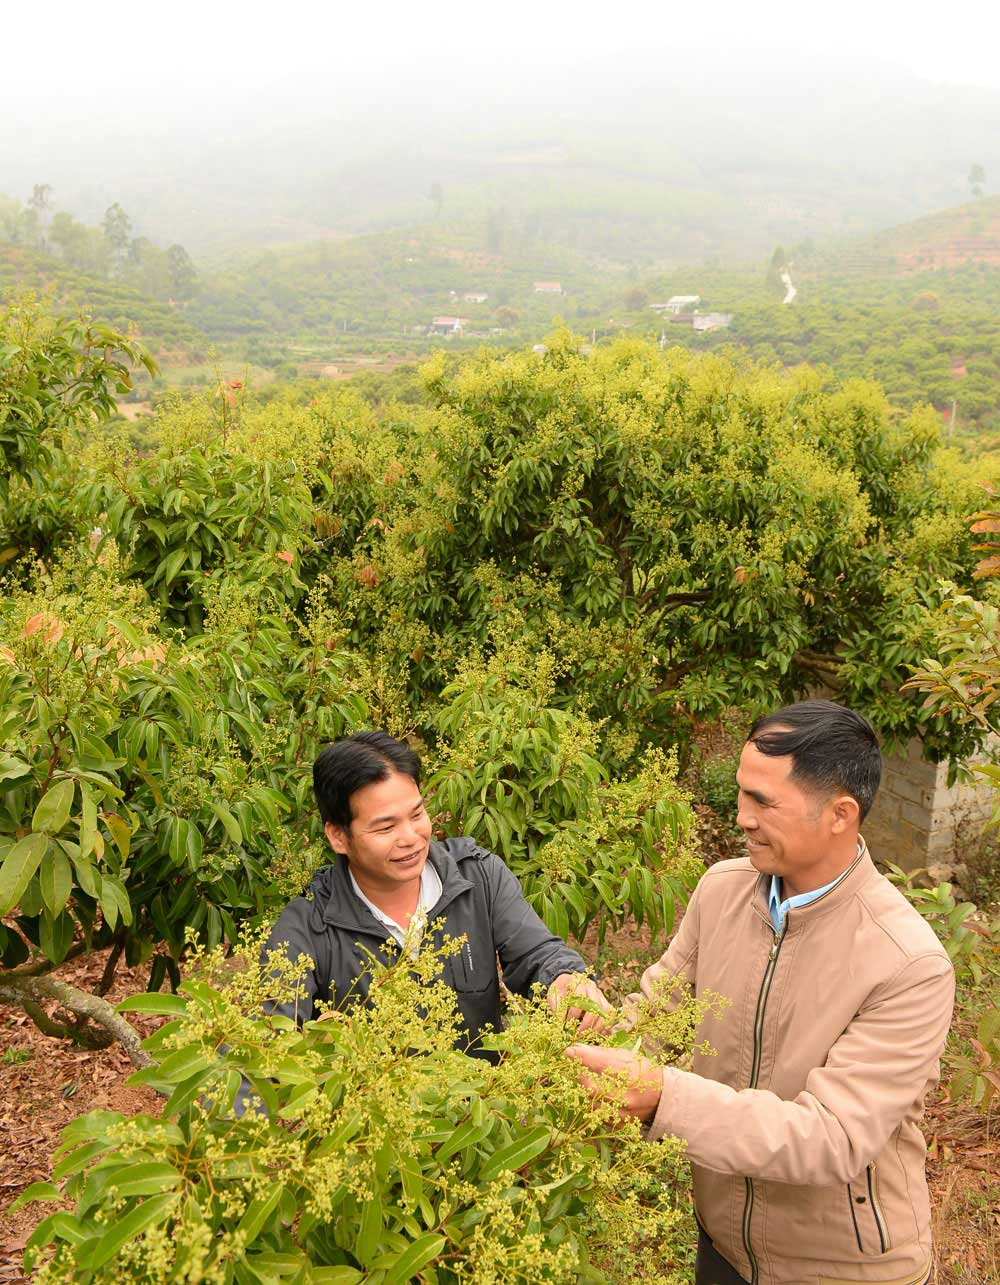 Bac Giang, VietGap lychee cultivation area,